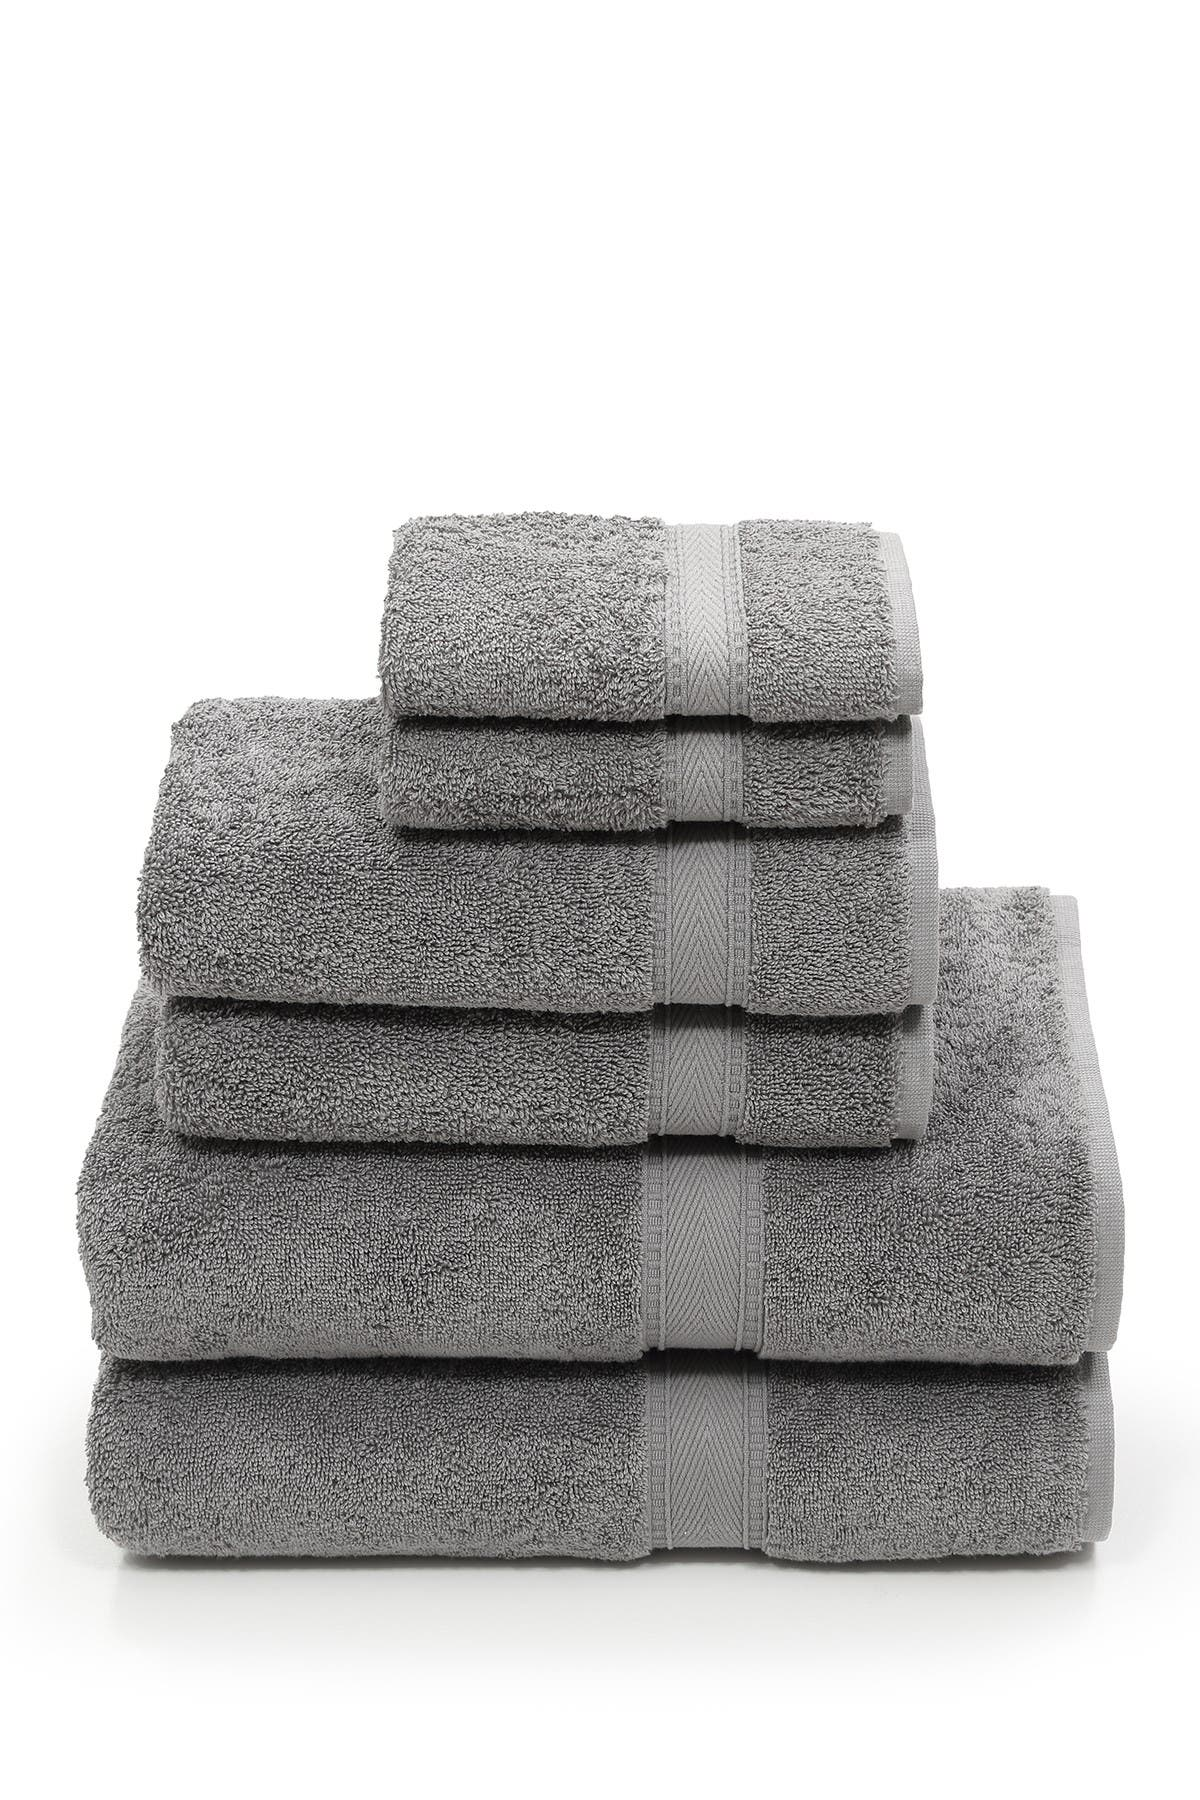 Image of LINUM HOME Sinemis Terry 6-Piece Towel Set - Dark Grey